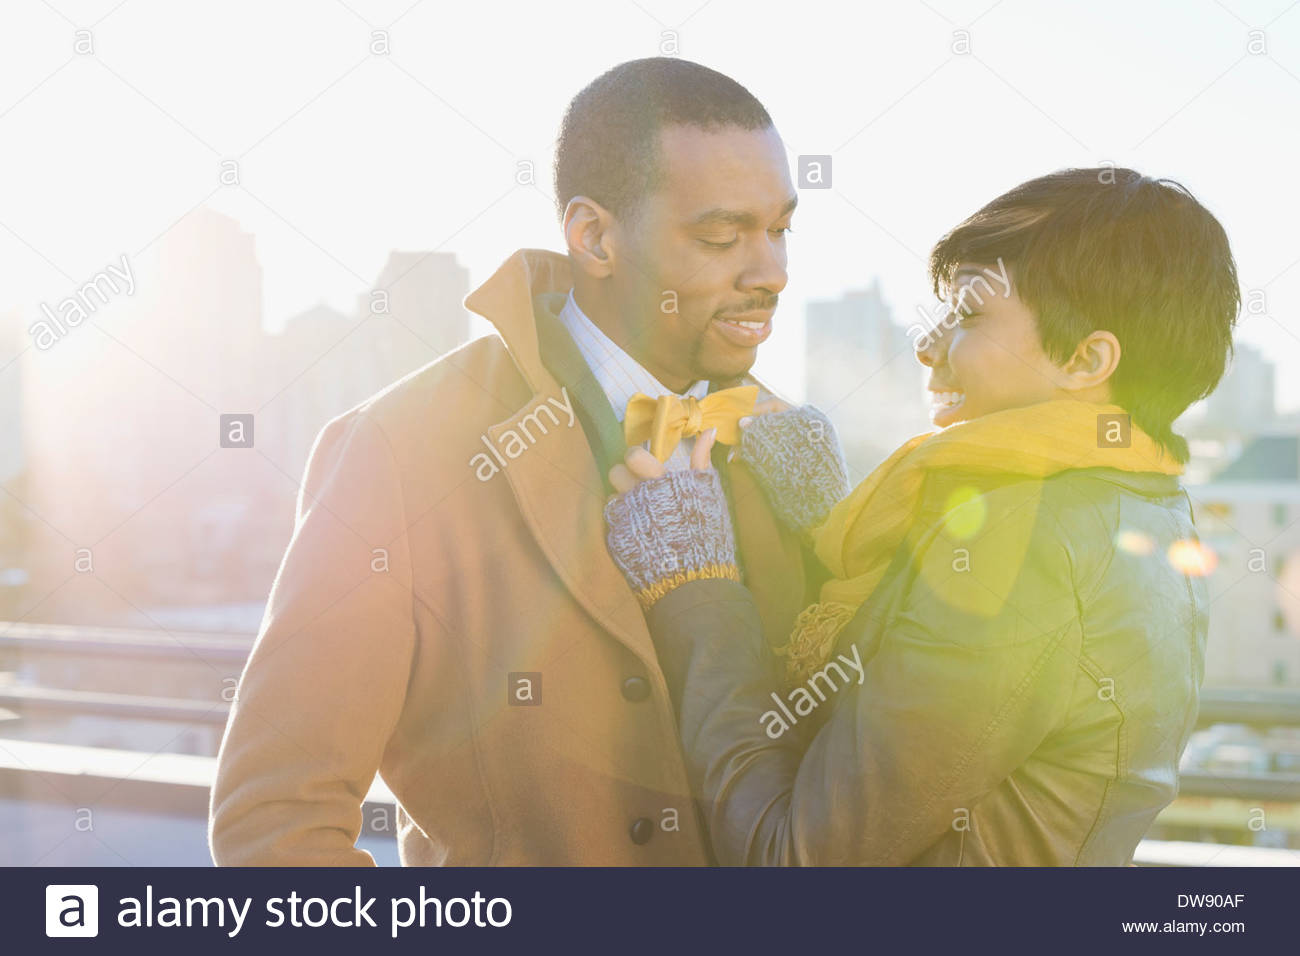 Smiling woman adjusting mans bow tie on patio - Stock Image